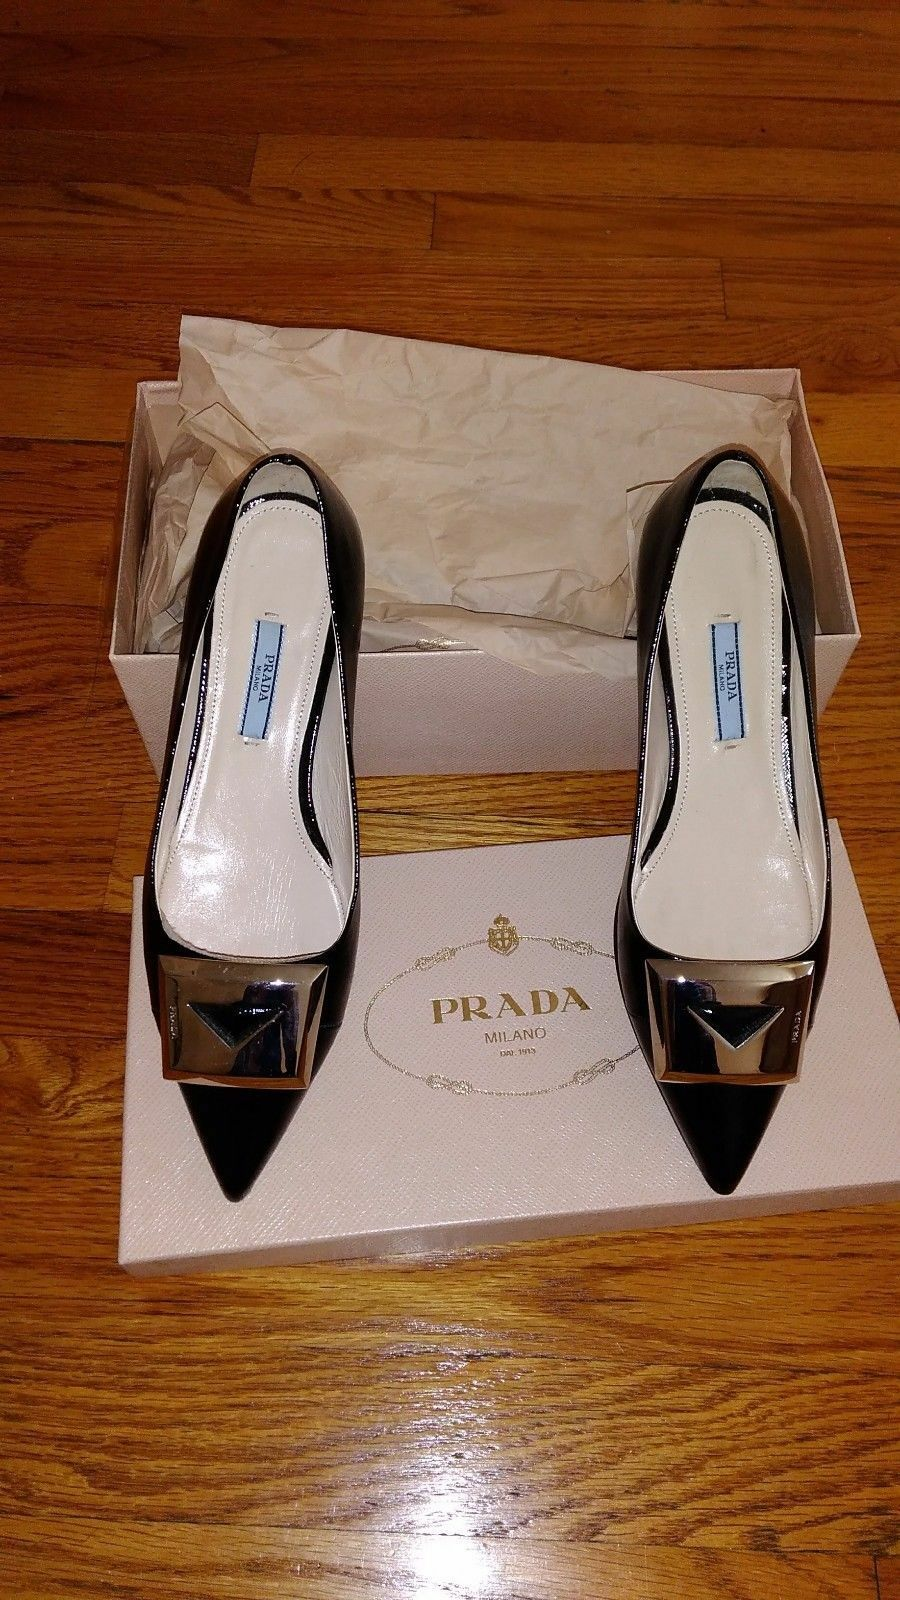 Authentic Prada Womens Patent Leather shoes, size 7.5, Black Mint Condition